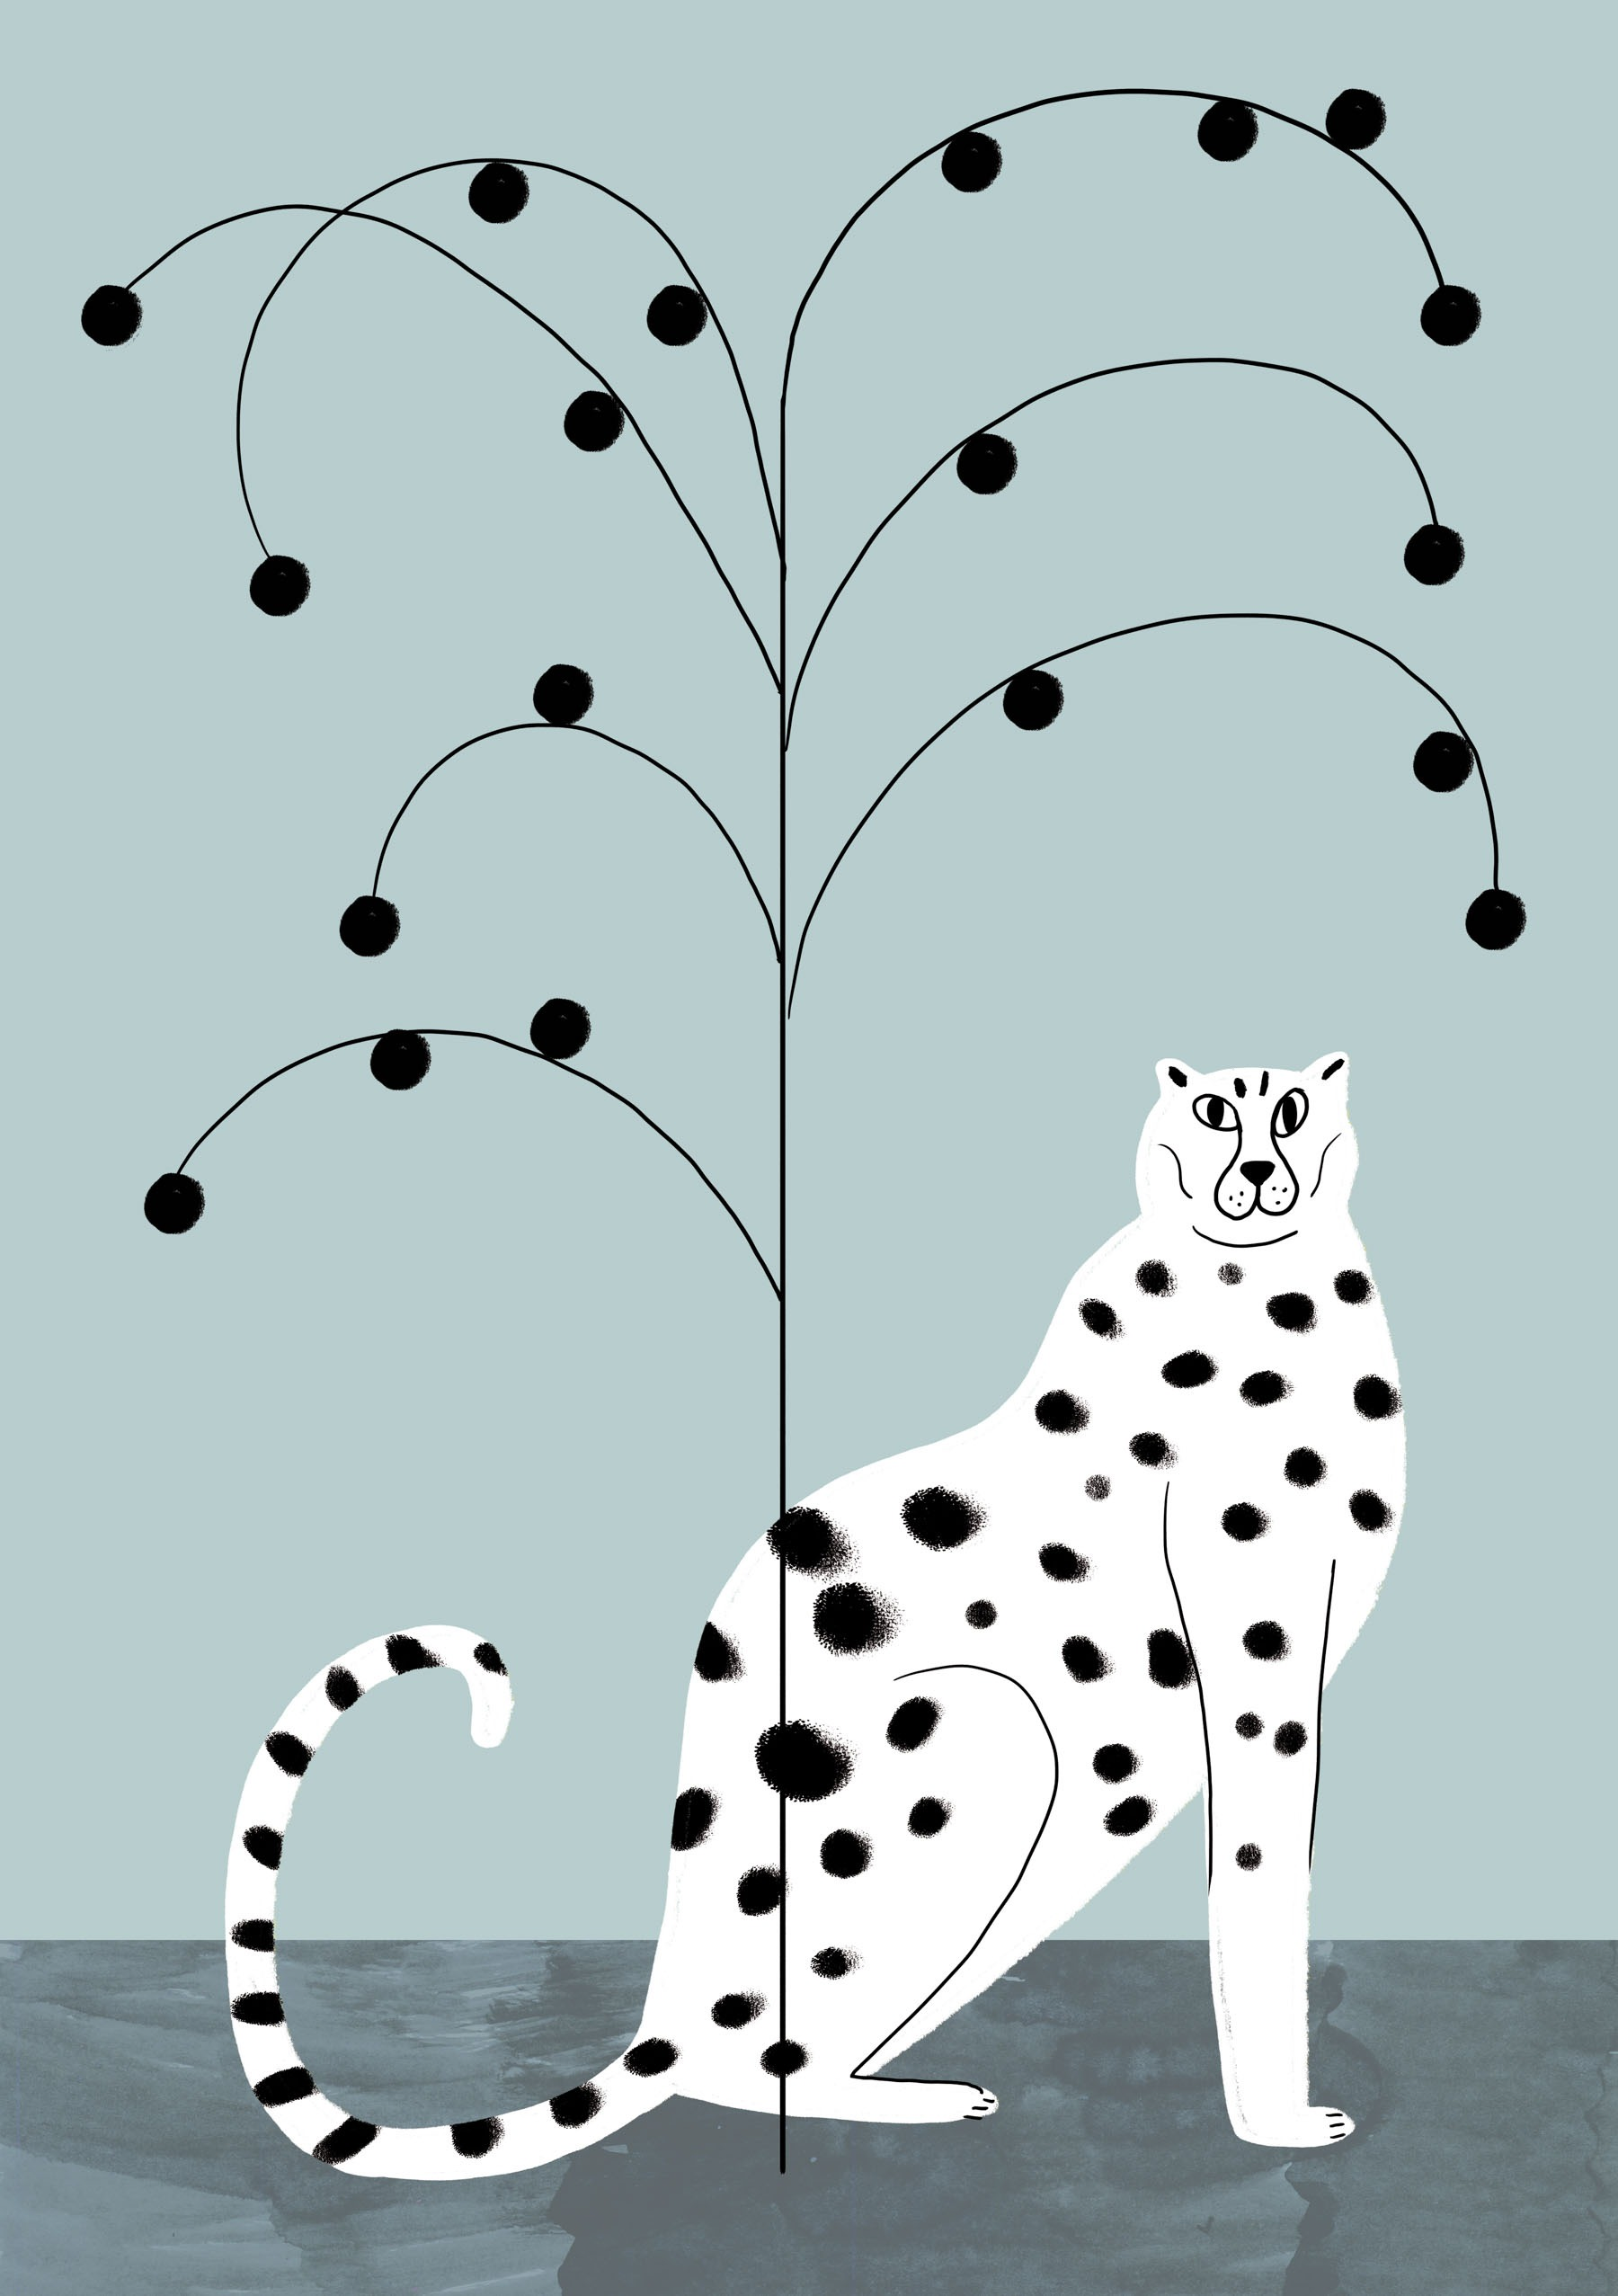 TROPICANA CHEETAH AND TREE - Personal Work